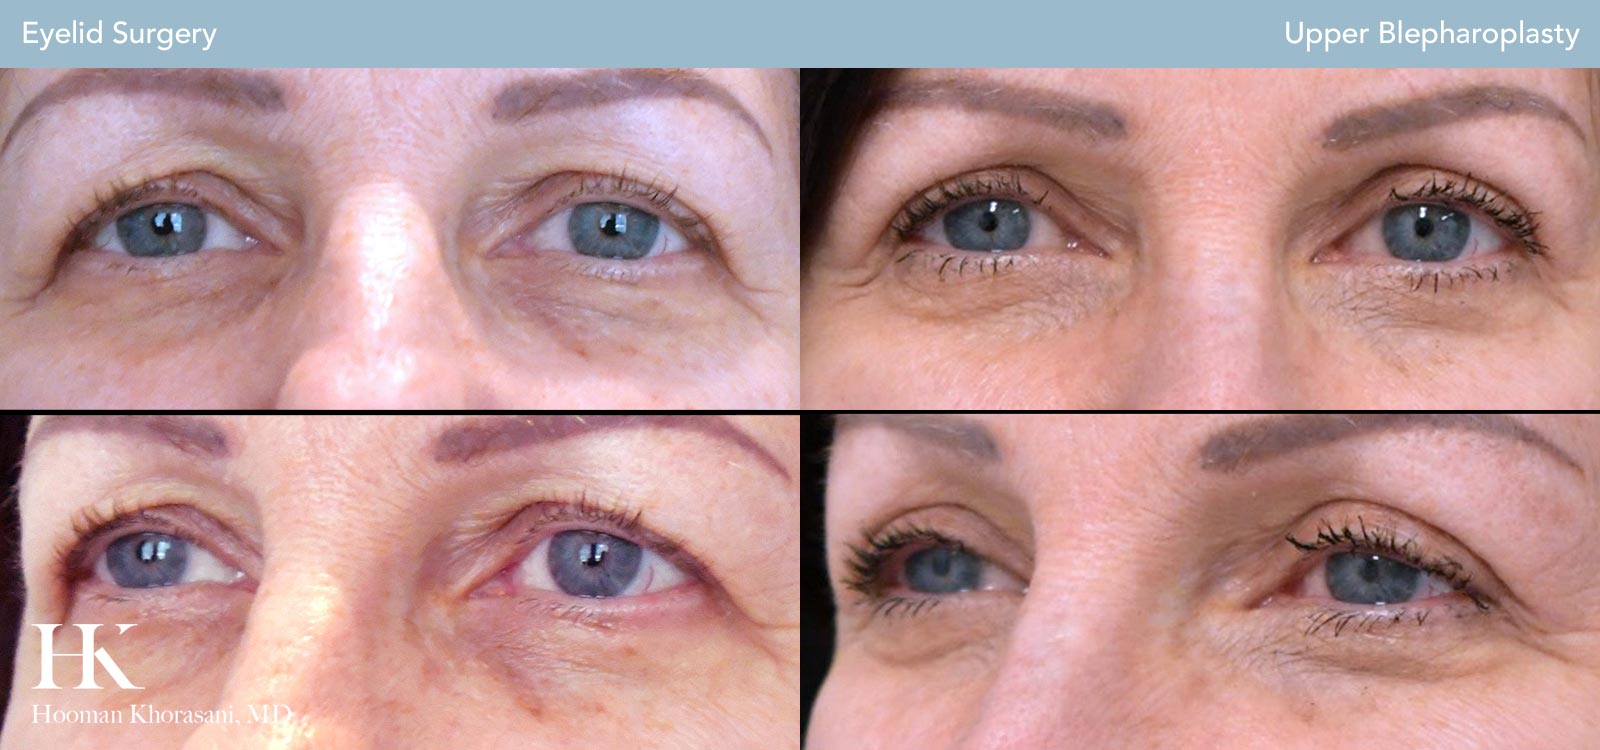 Eyelid Surgery Before and After Case